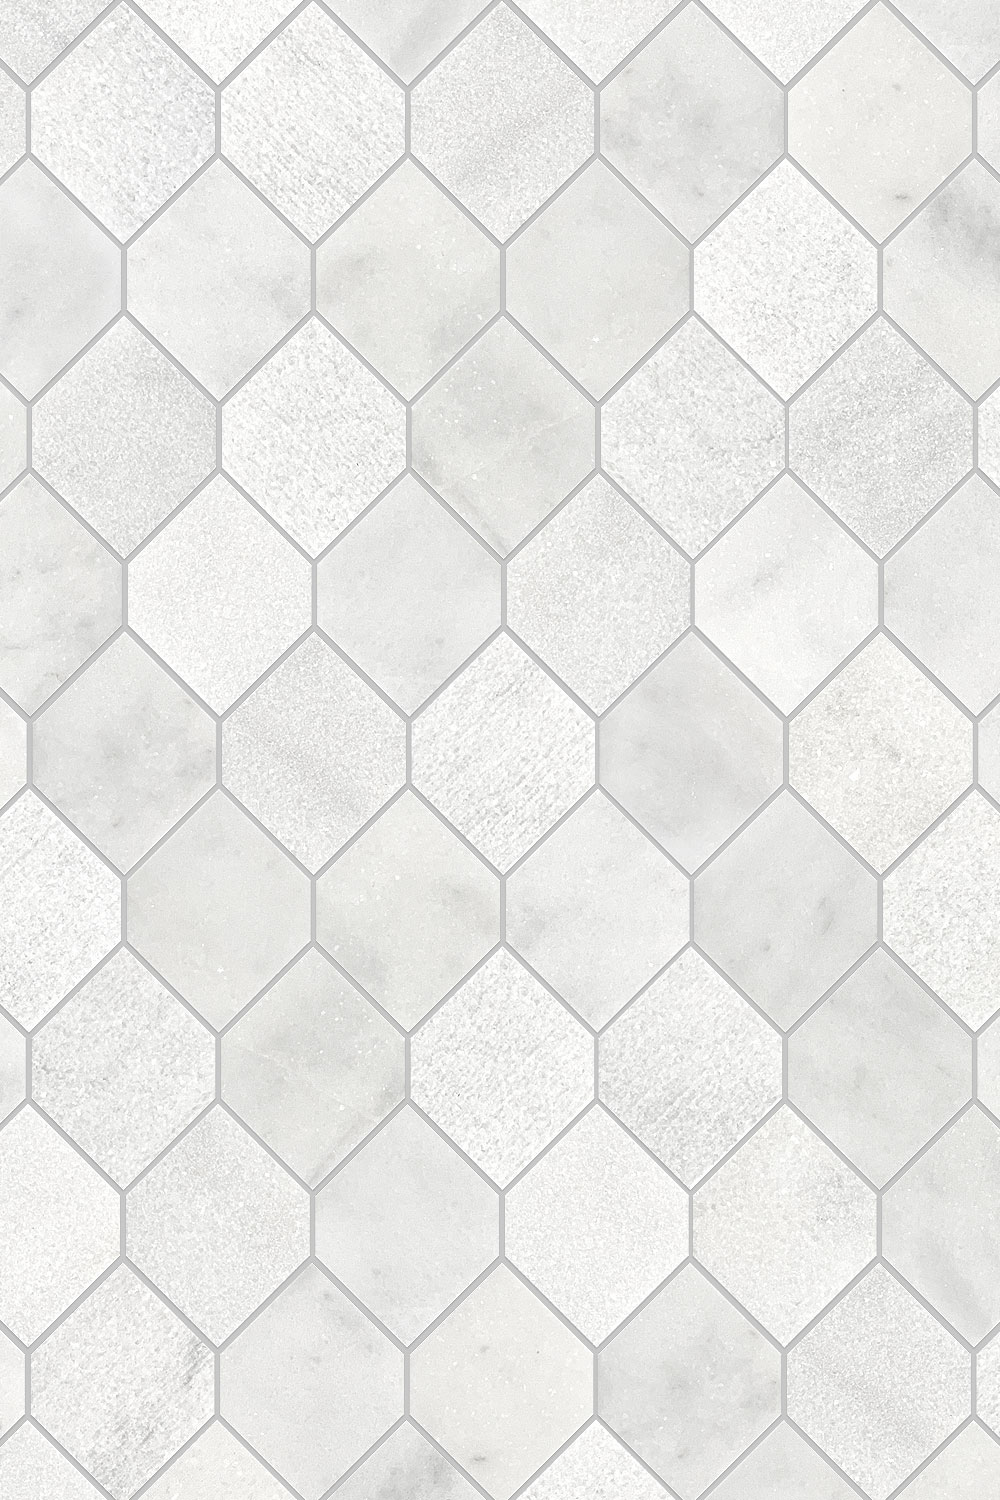 White Gray Marble Mosaic Backsplash Tile Gray Grout BA630112